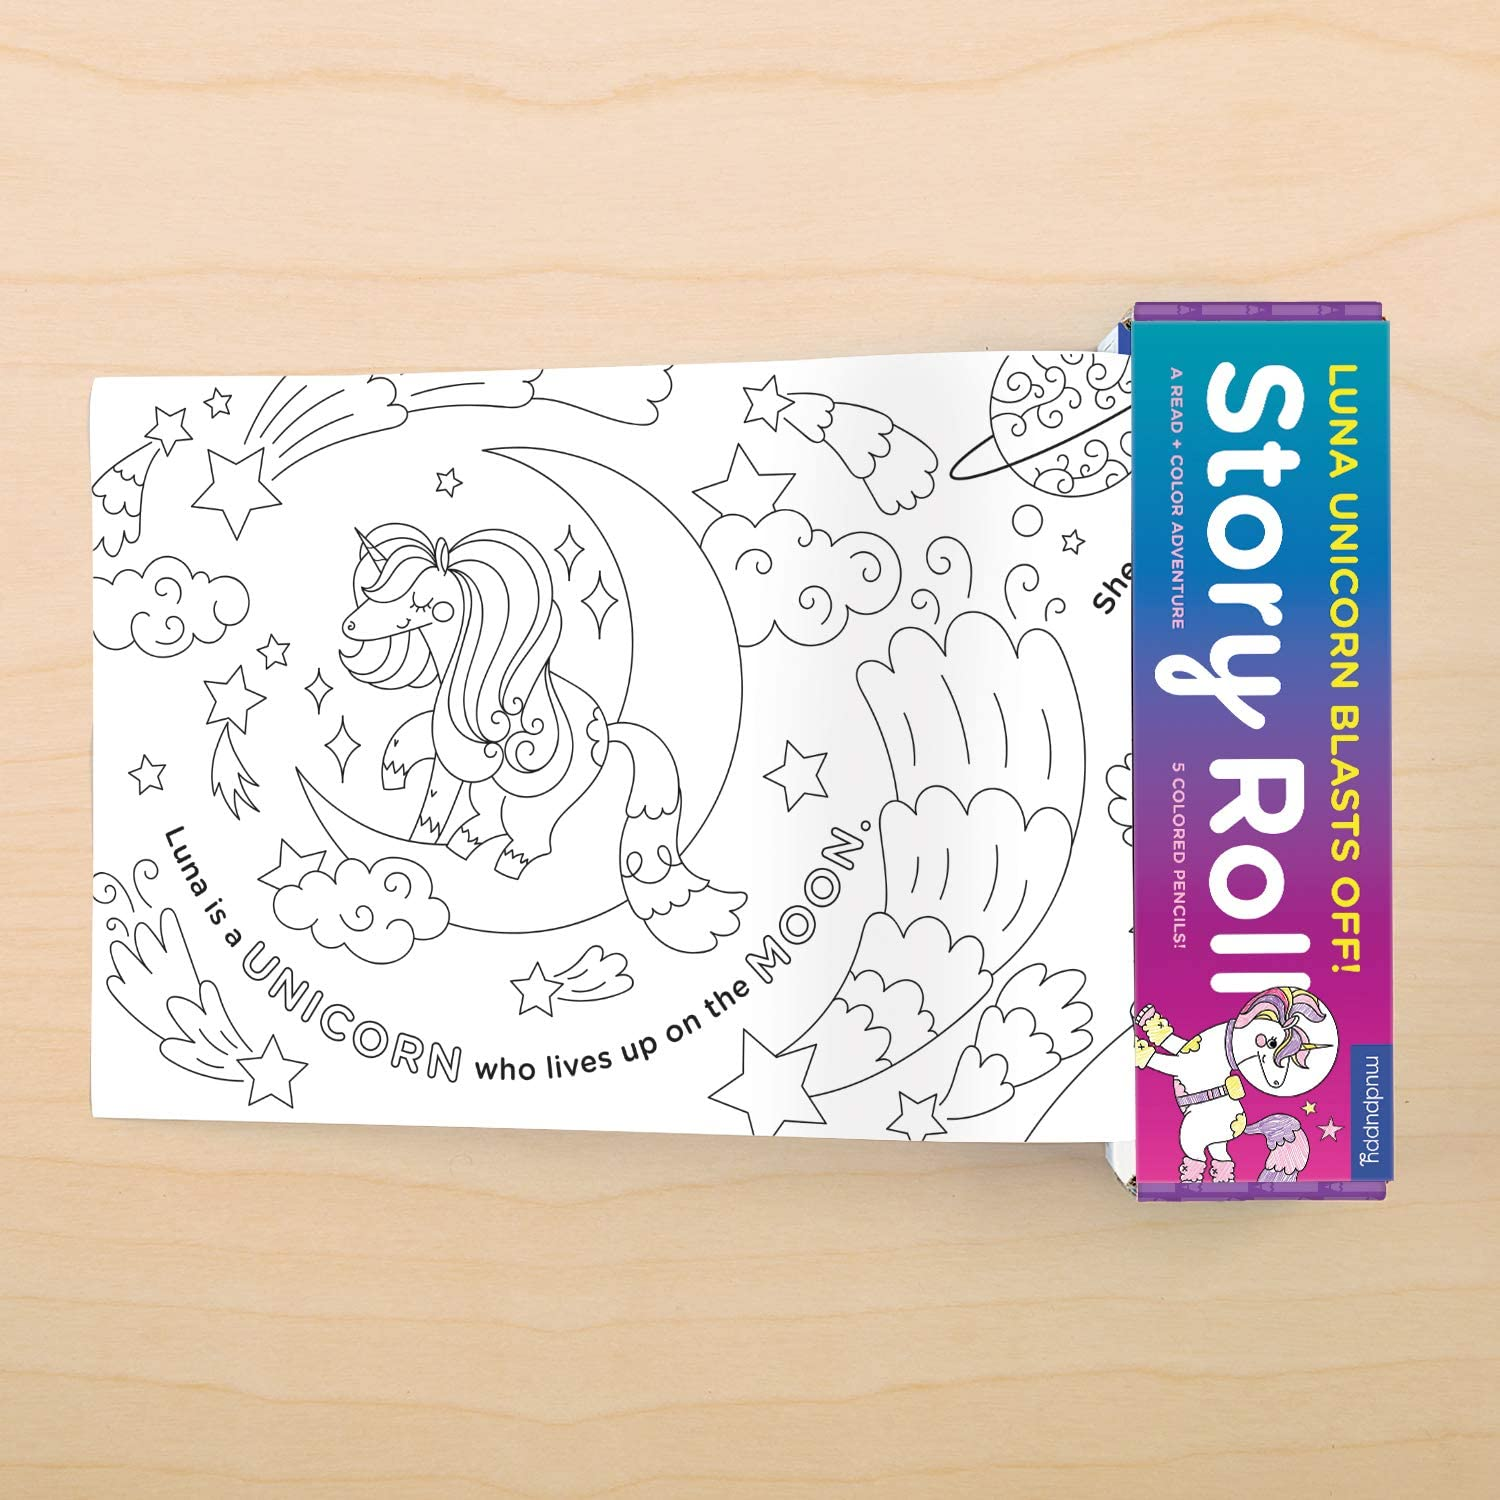 Continuous Story and Unicorn Coloring Paper Roll Measuring 8 Feet A Read /& Color Adventure for Kids 4+ Multicolor 5 Colored Pencils Included Mudpuppy Luna Unicorn Blasts Off Story Roll